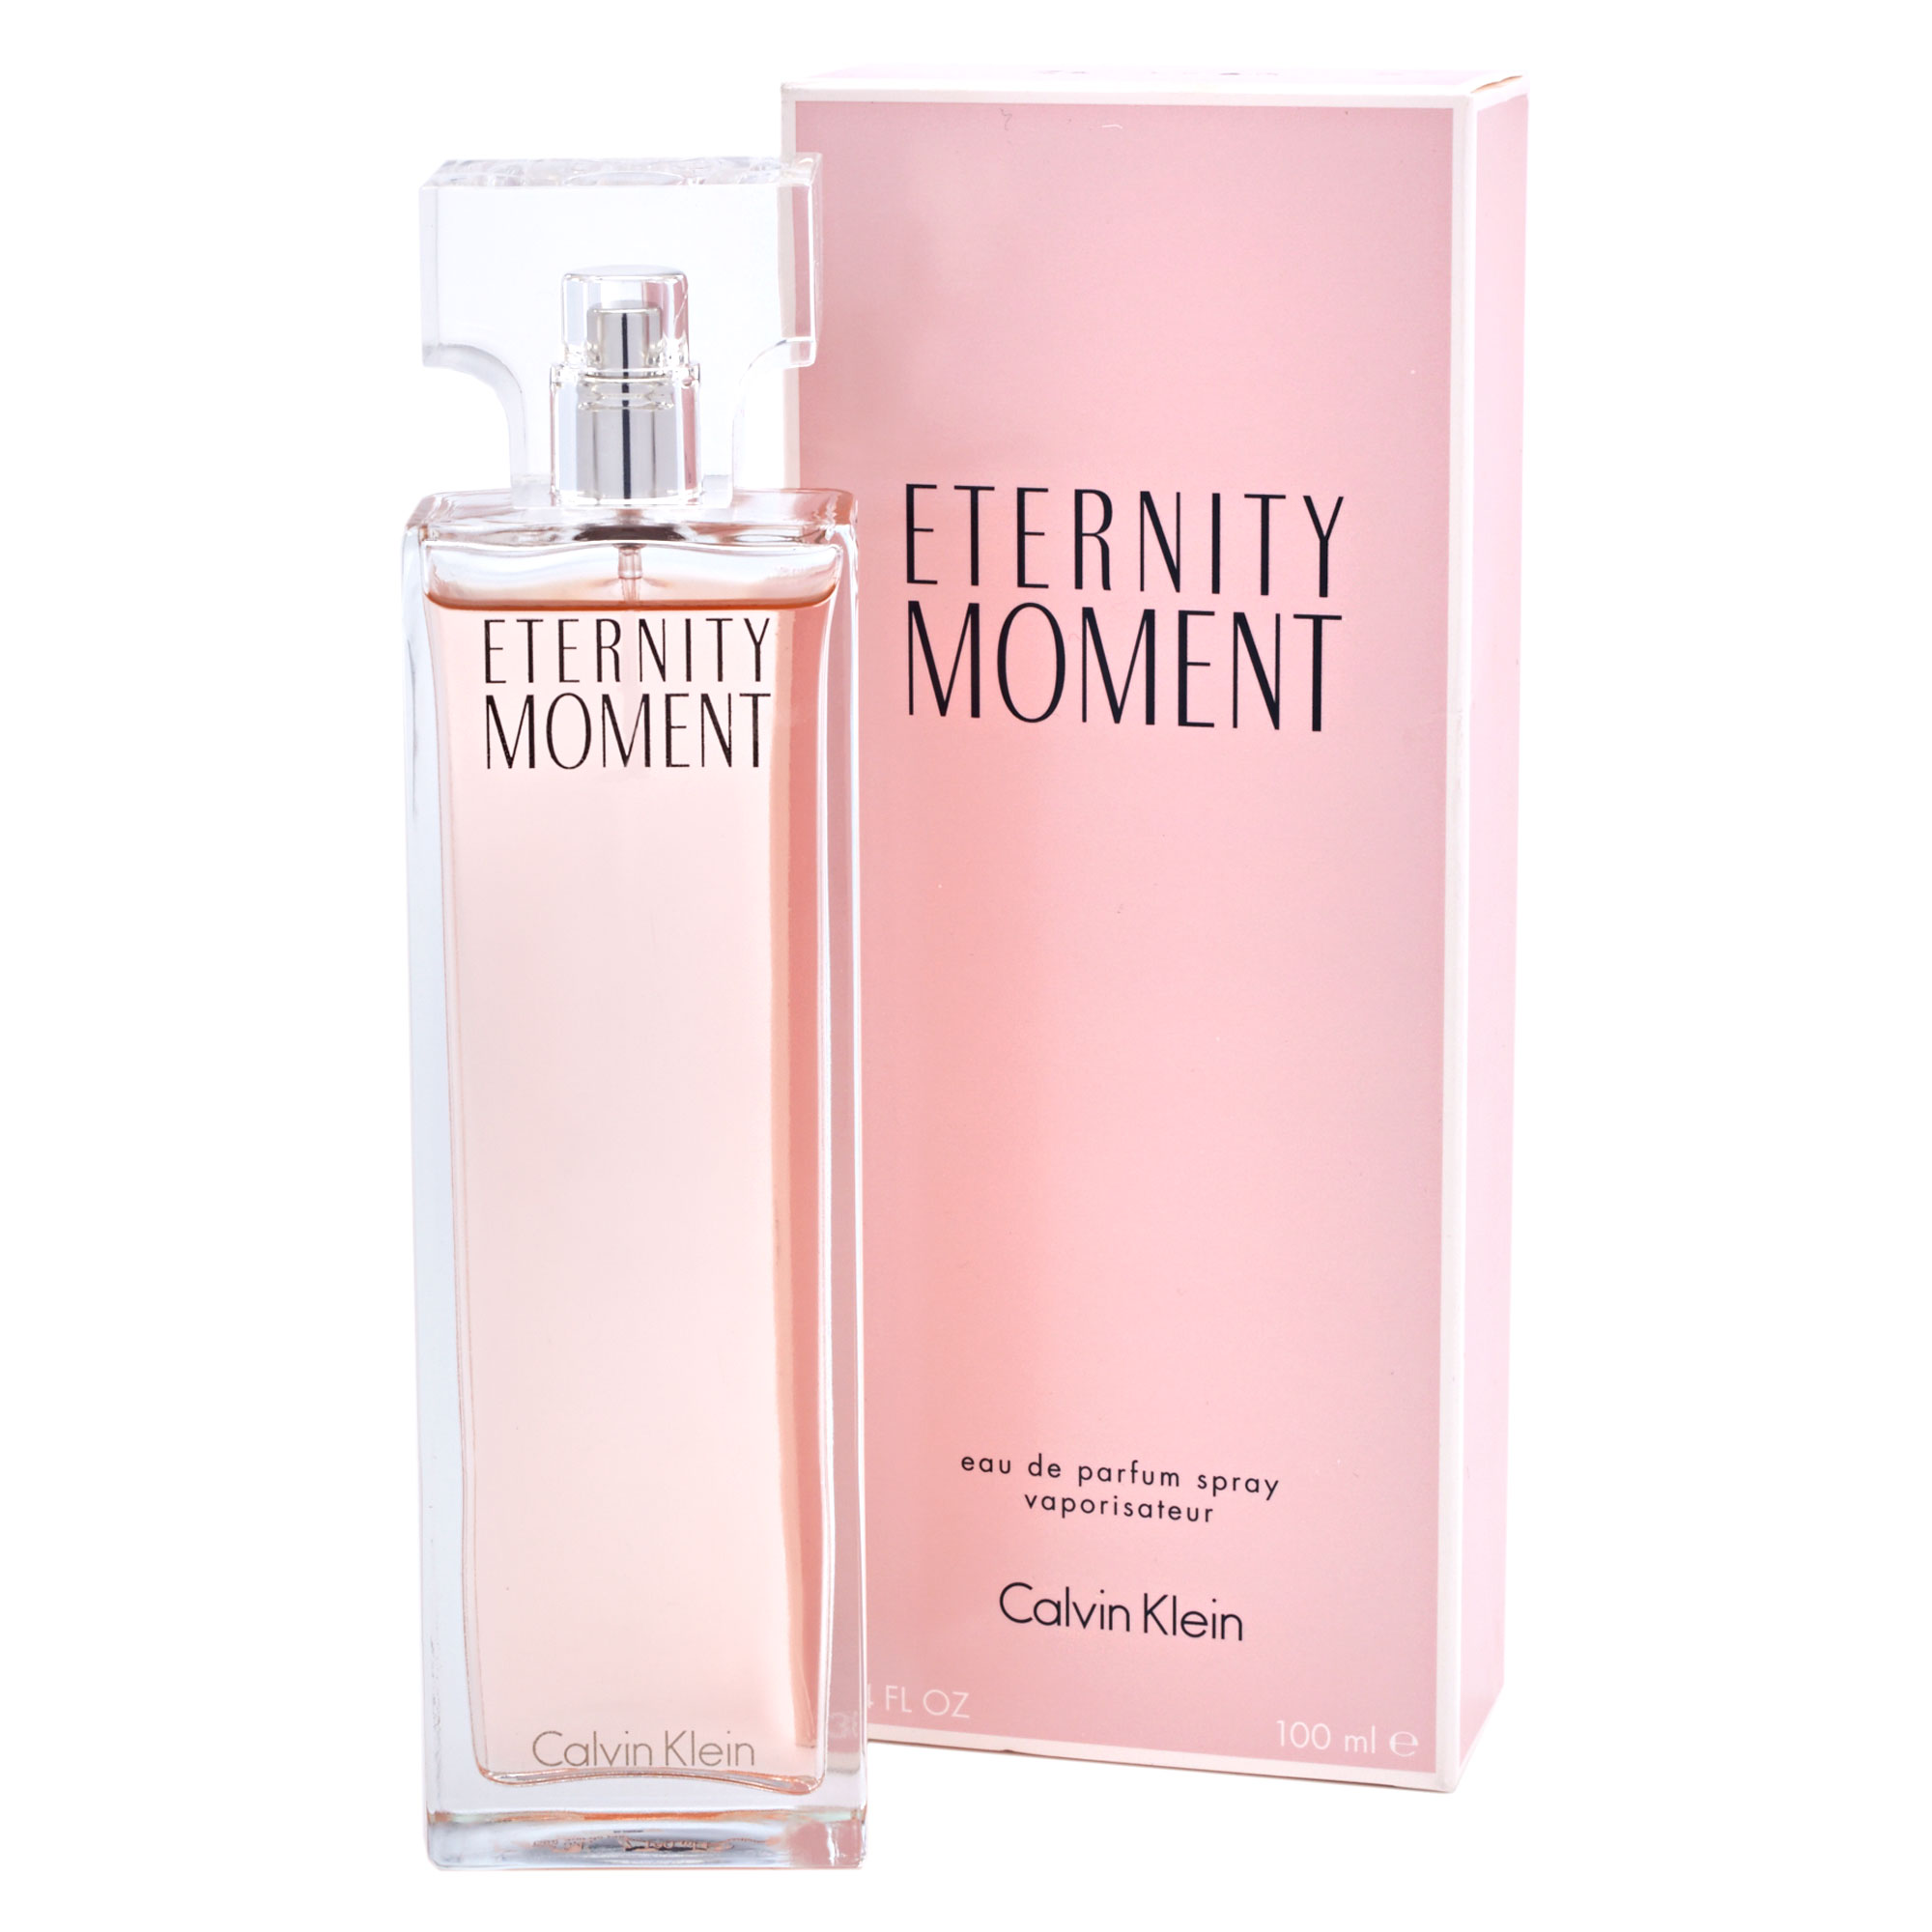 eternity moments perfume